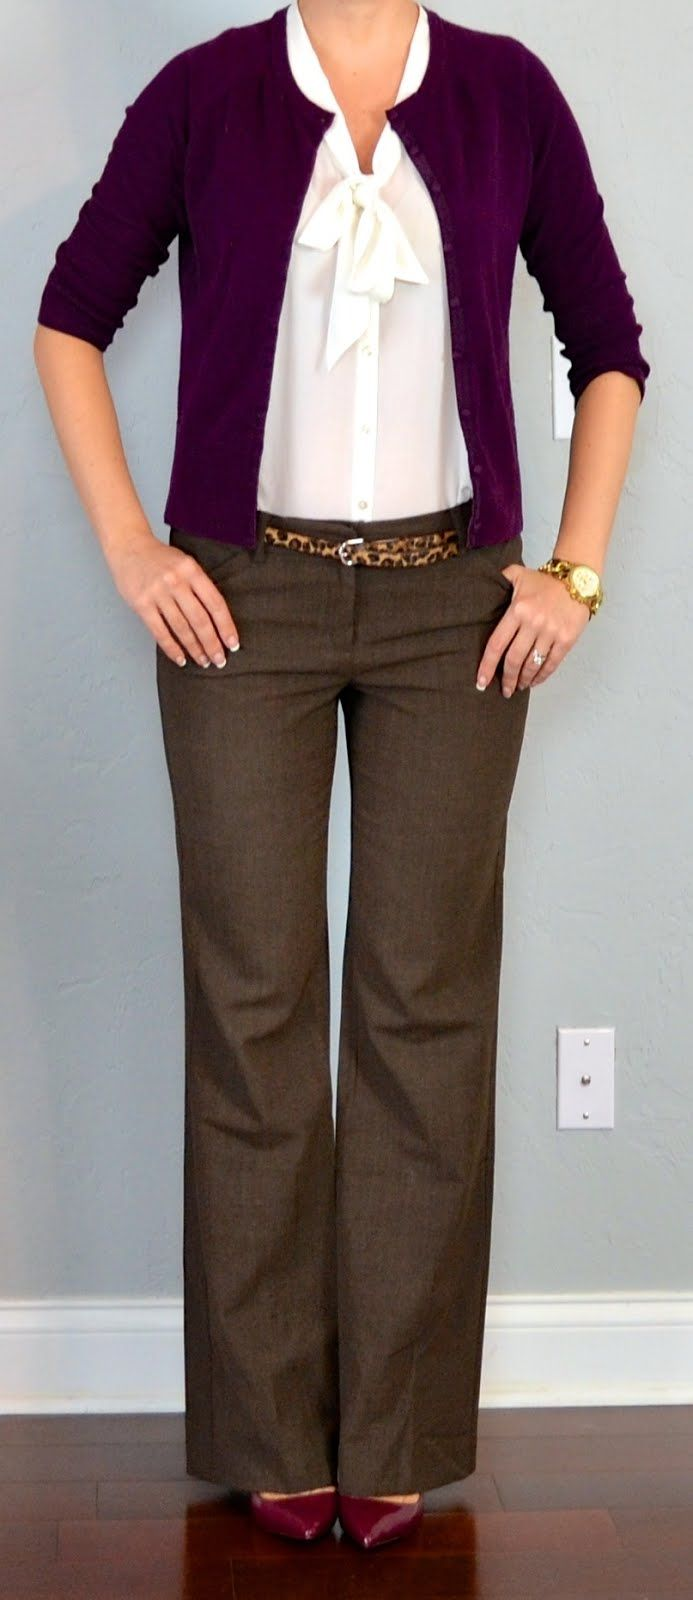 outfit post: burgundy cardigan, white tie blouse, brown 'editor' pants, leopard belt